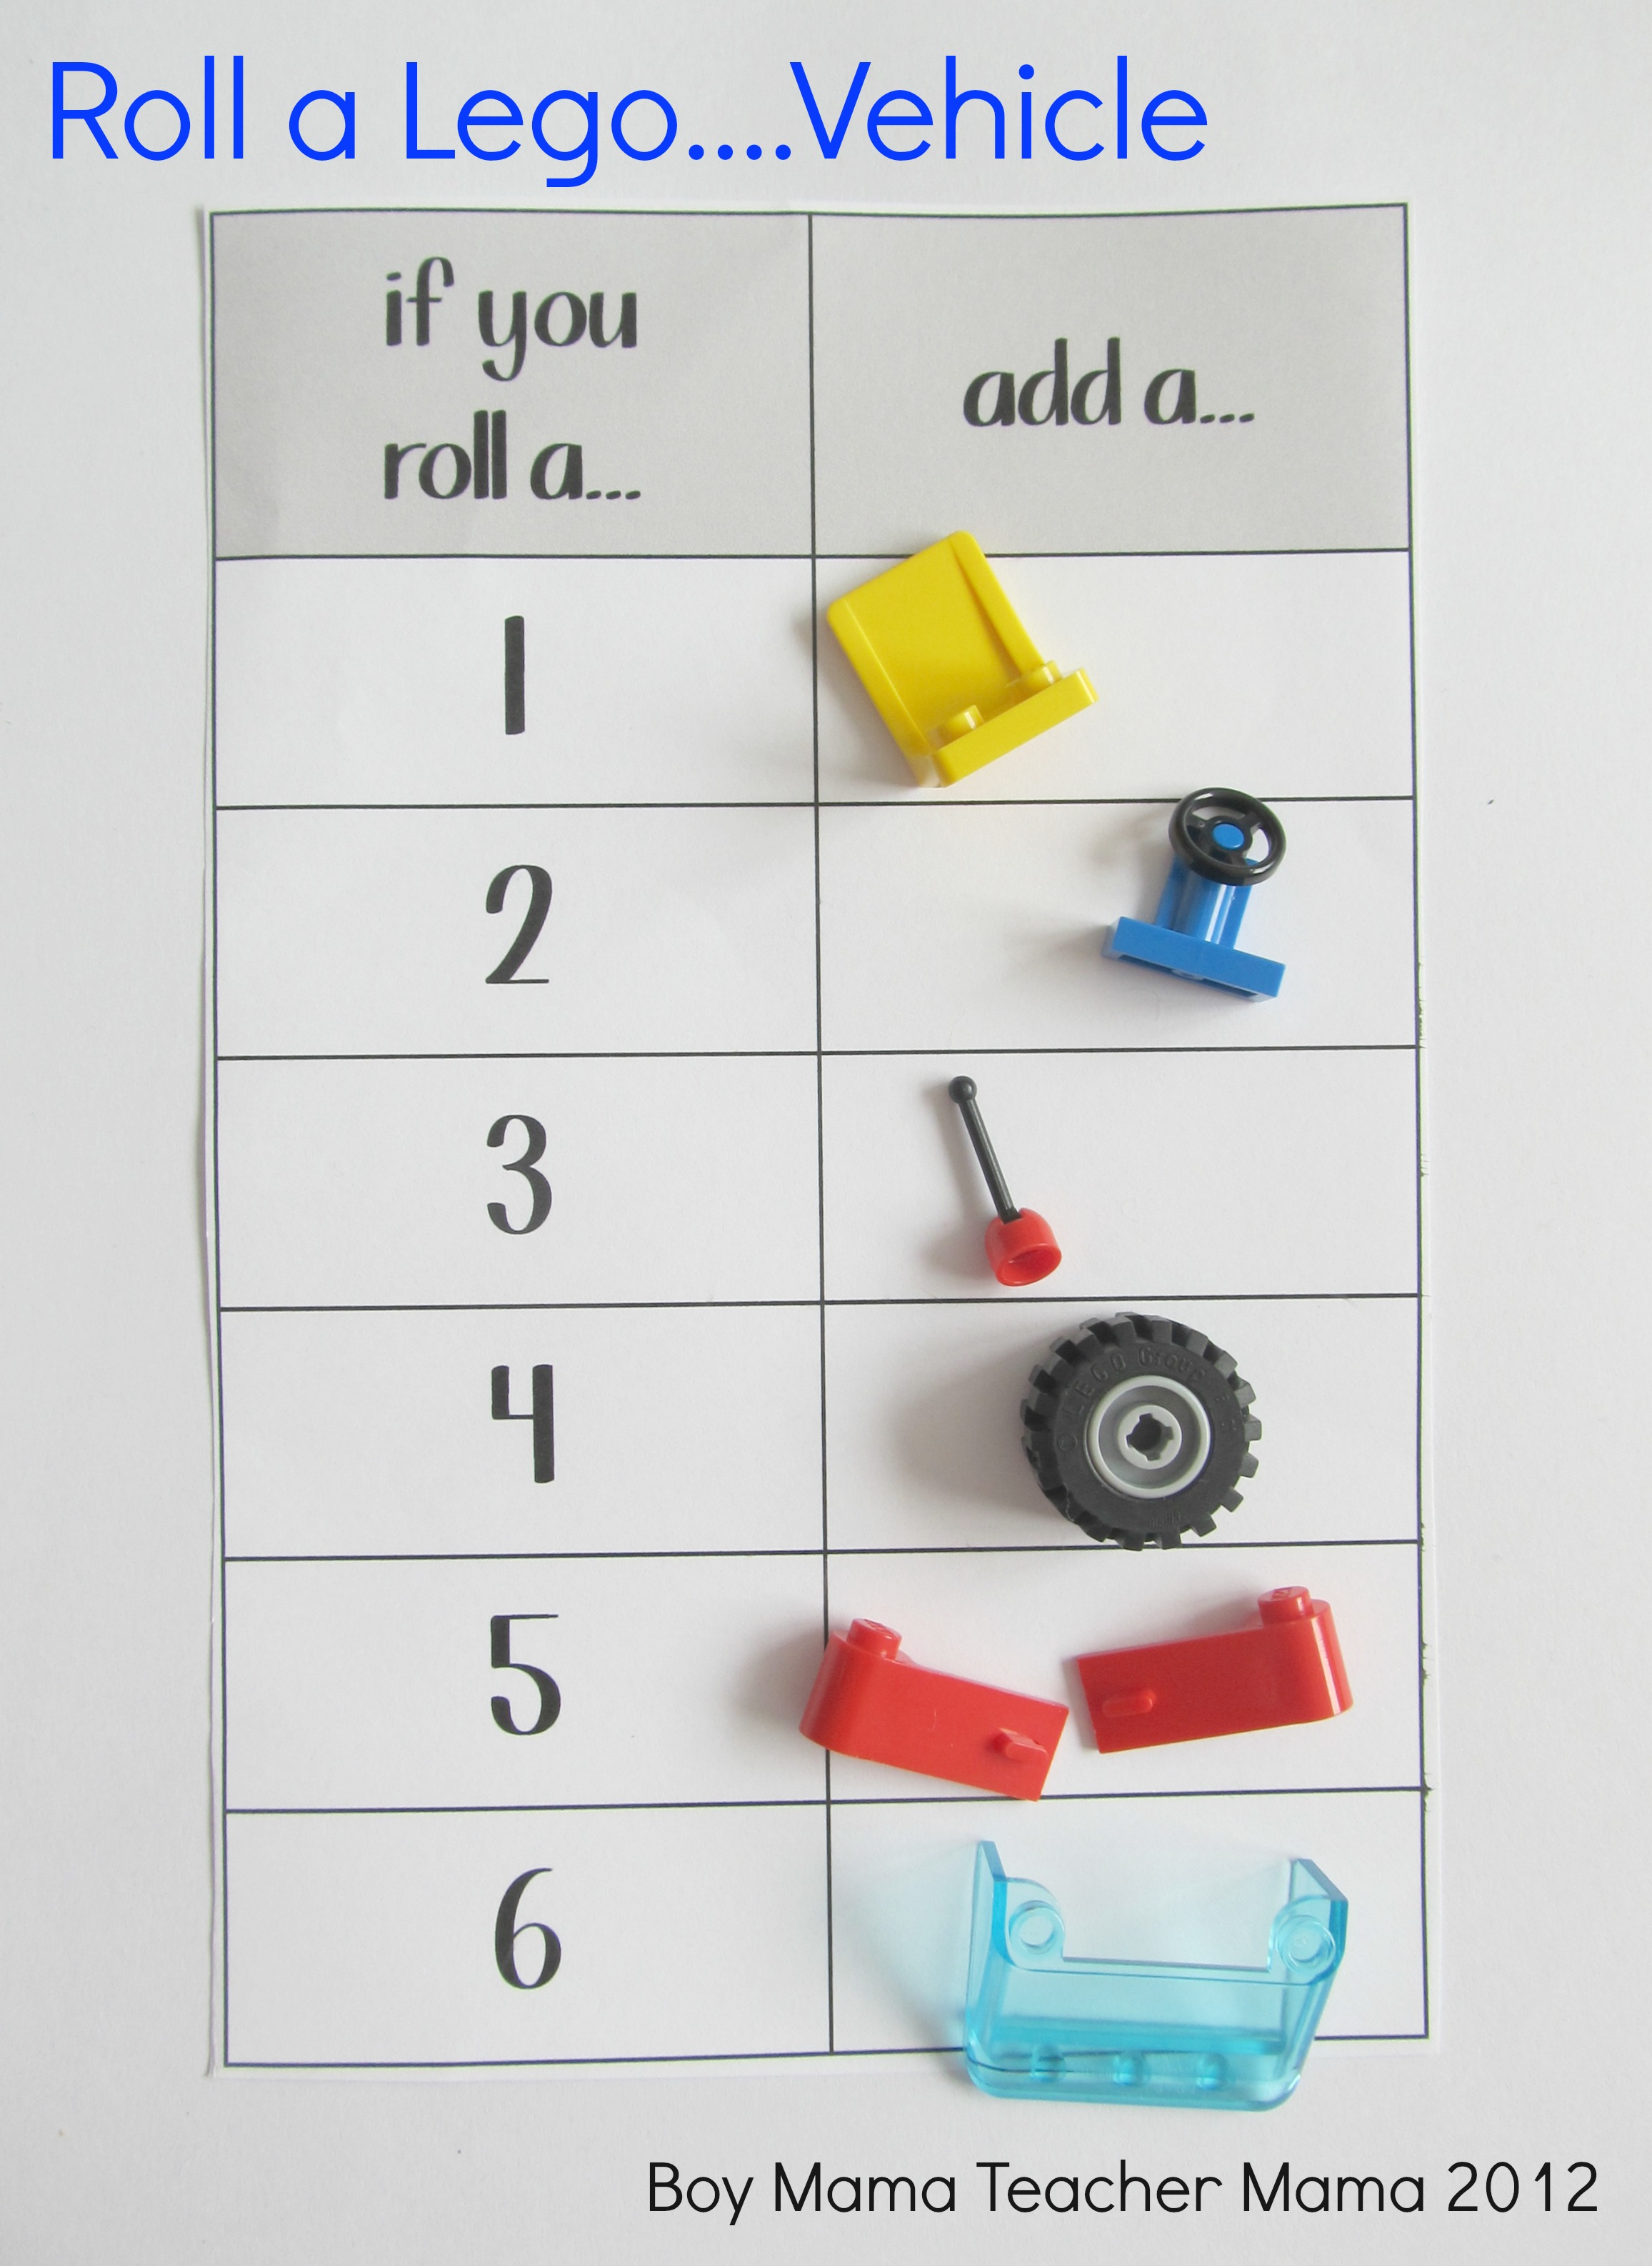 Boy Mama Teacher Mama | roll a Lego Dice Game